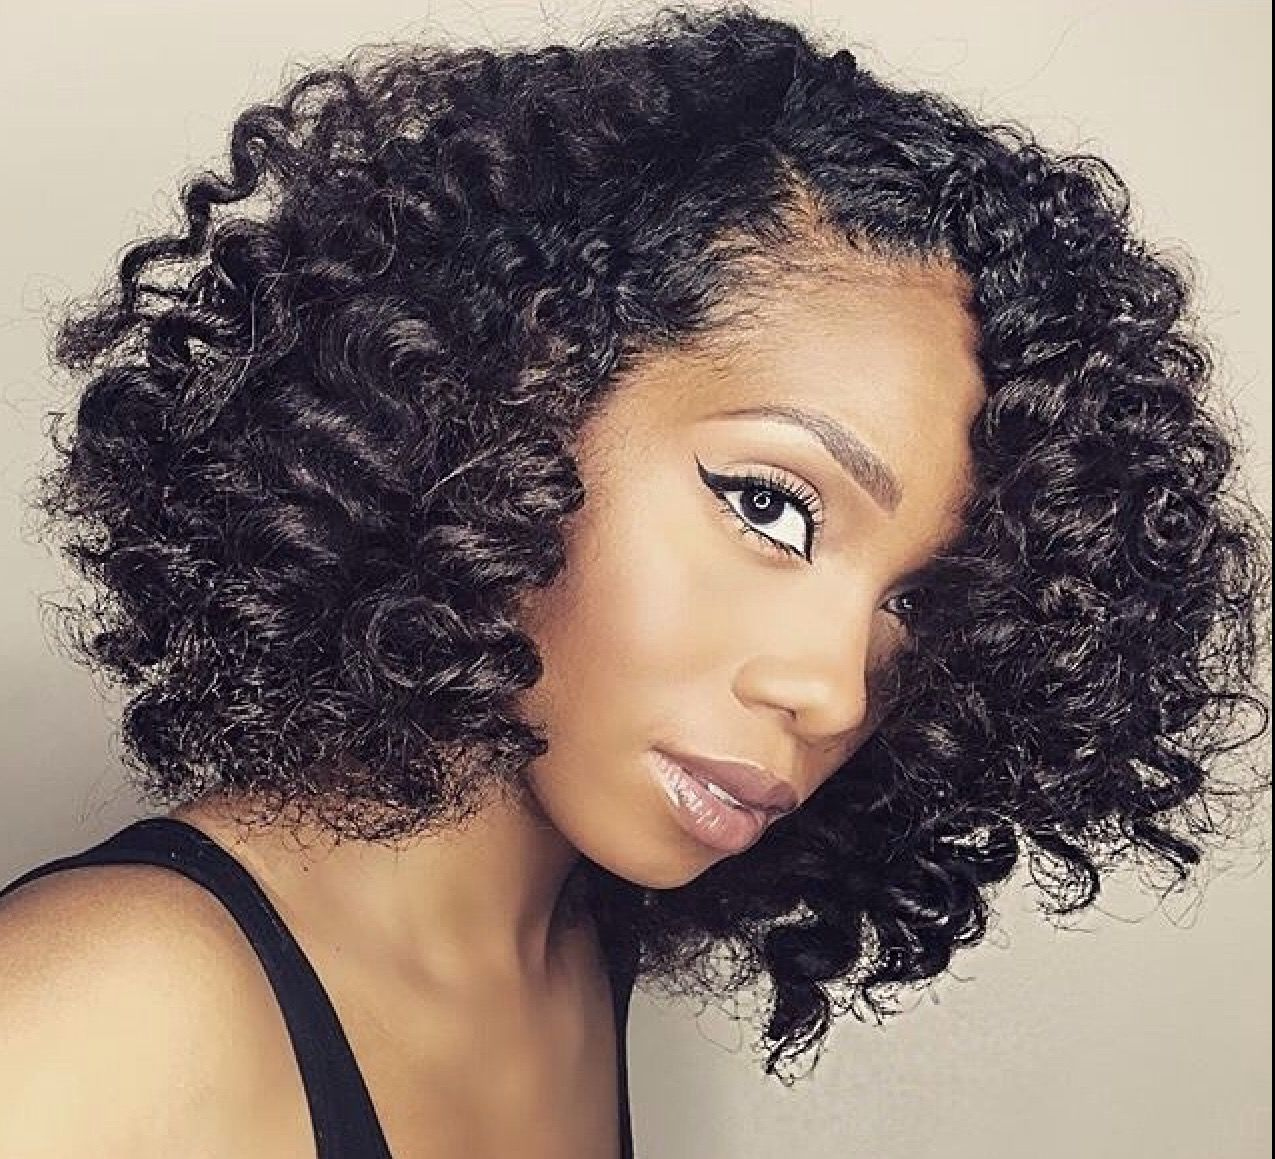 Transitioning Hairstyles Amazing Pinshelby Parker Helgerson On Beautiful And Natural Hair Styles